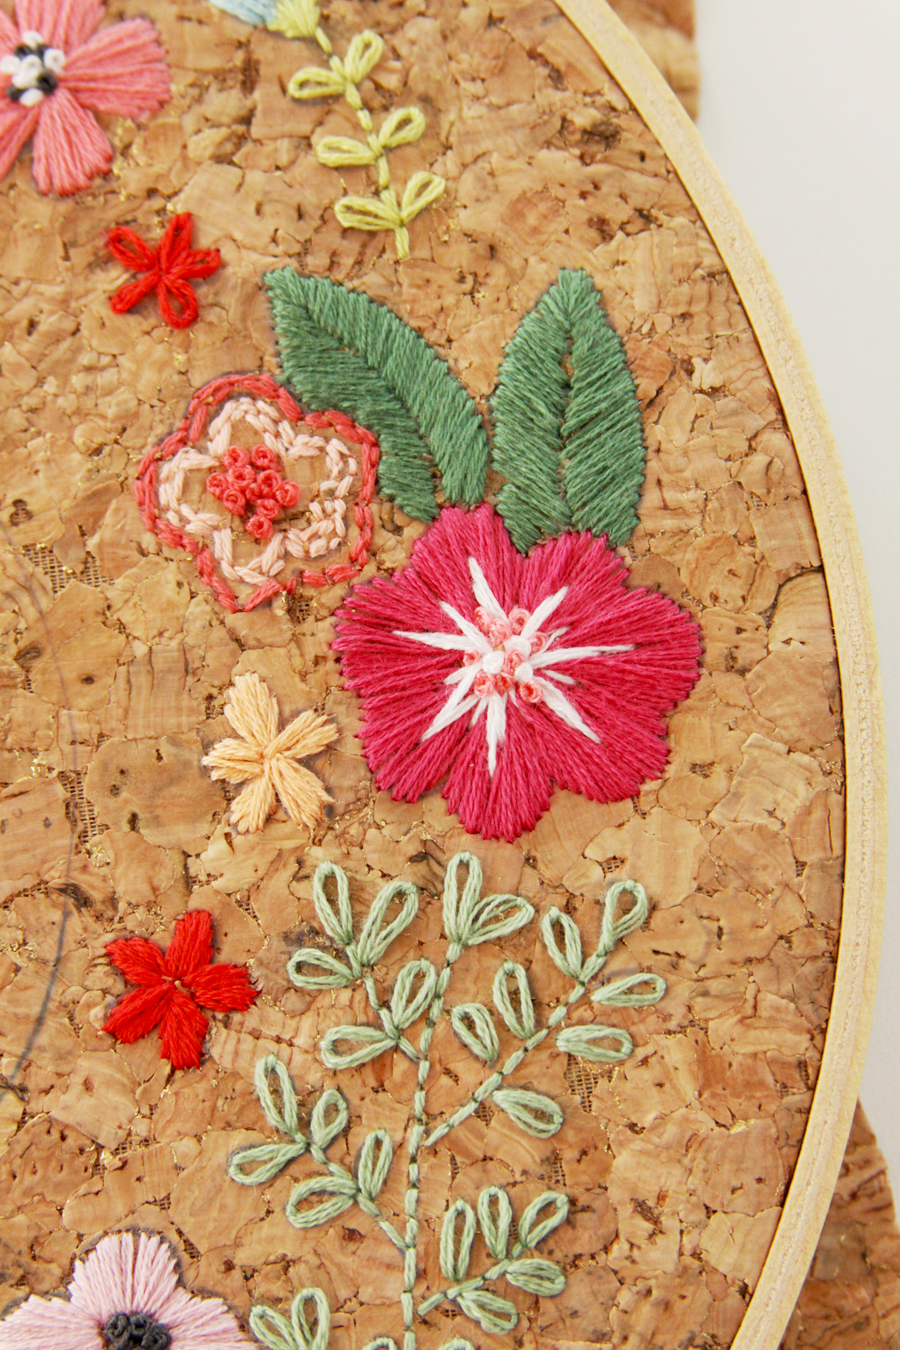 Floral home sweet hoop in a embroidery and